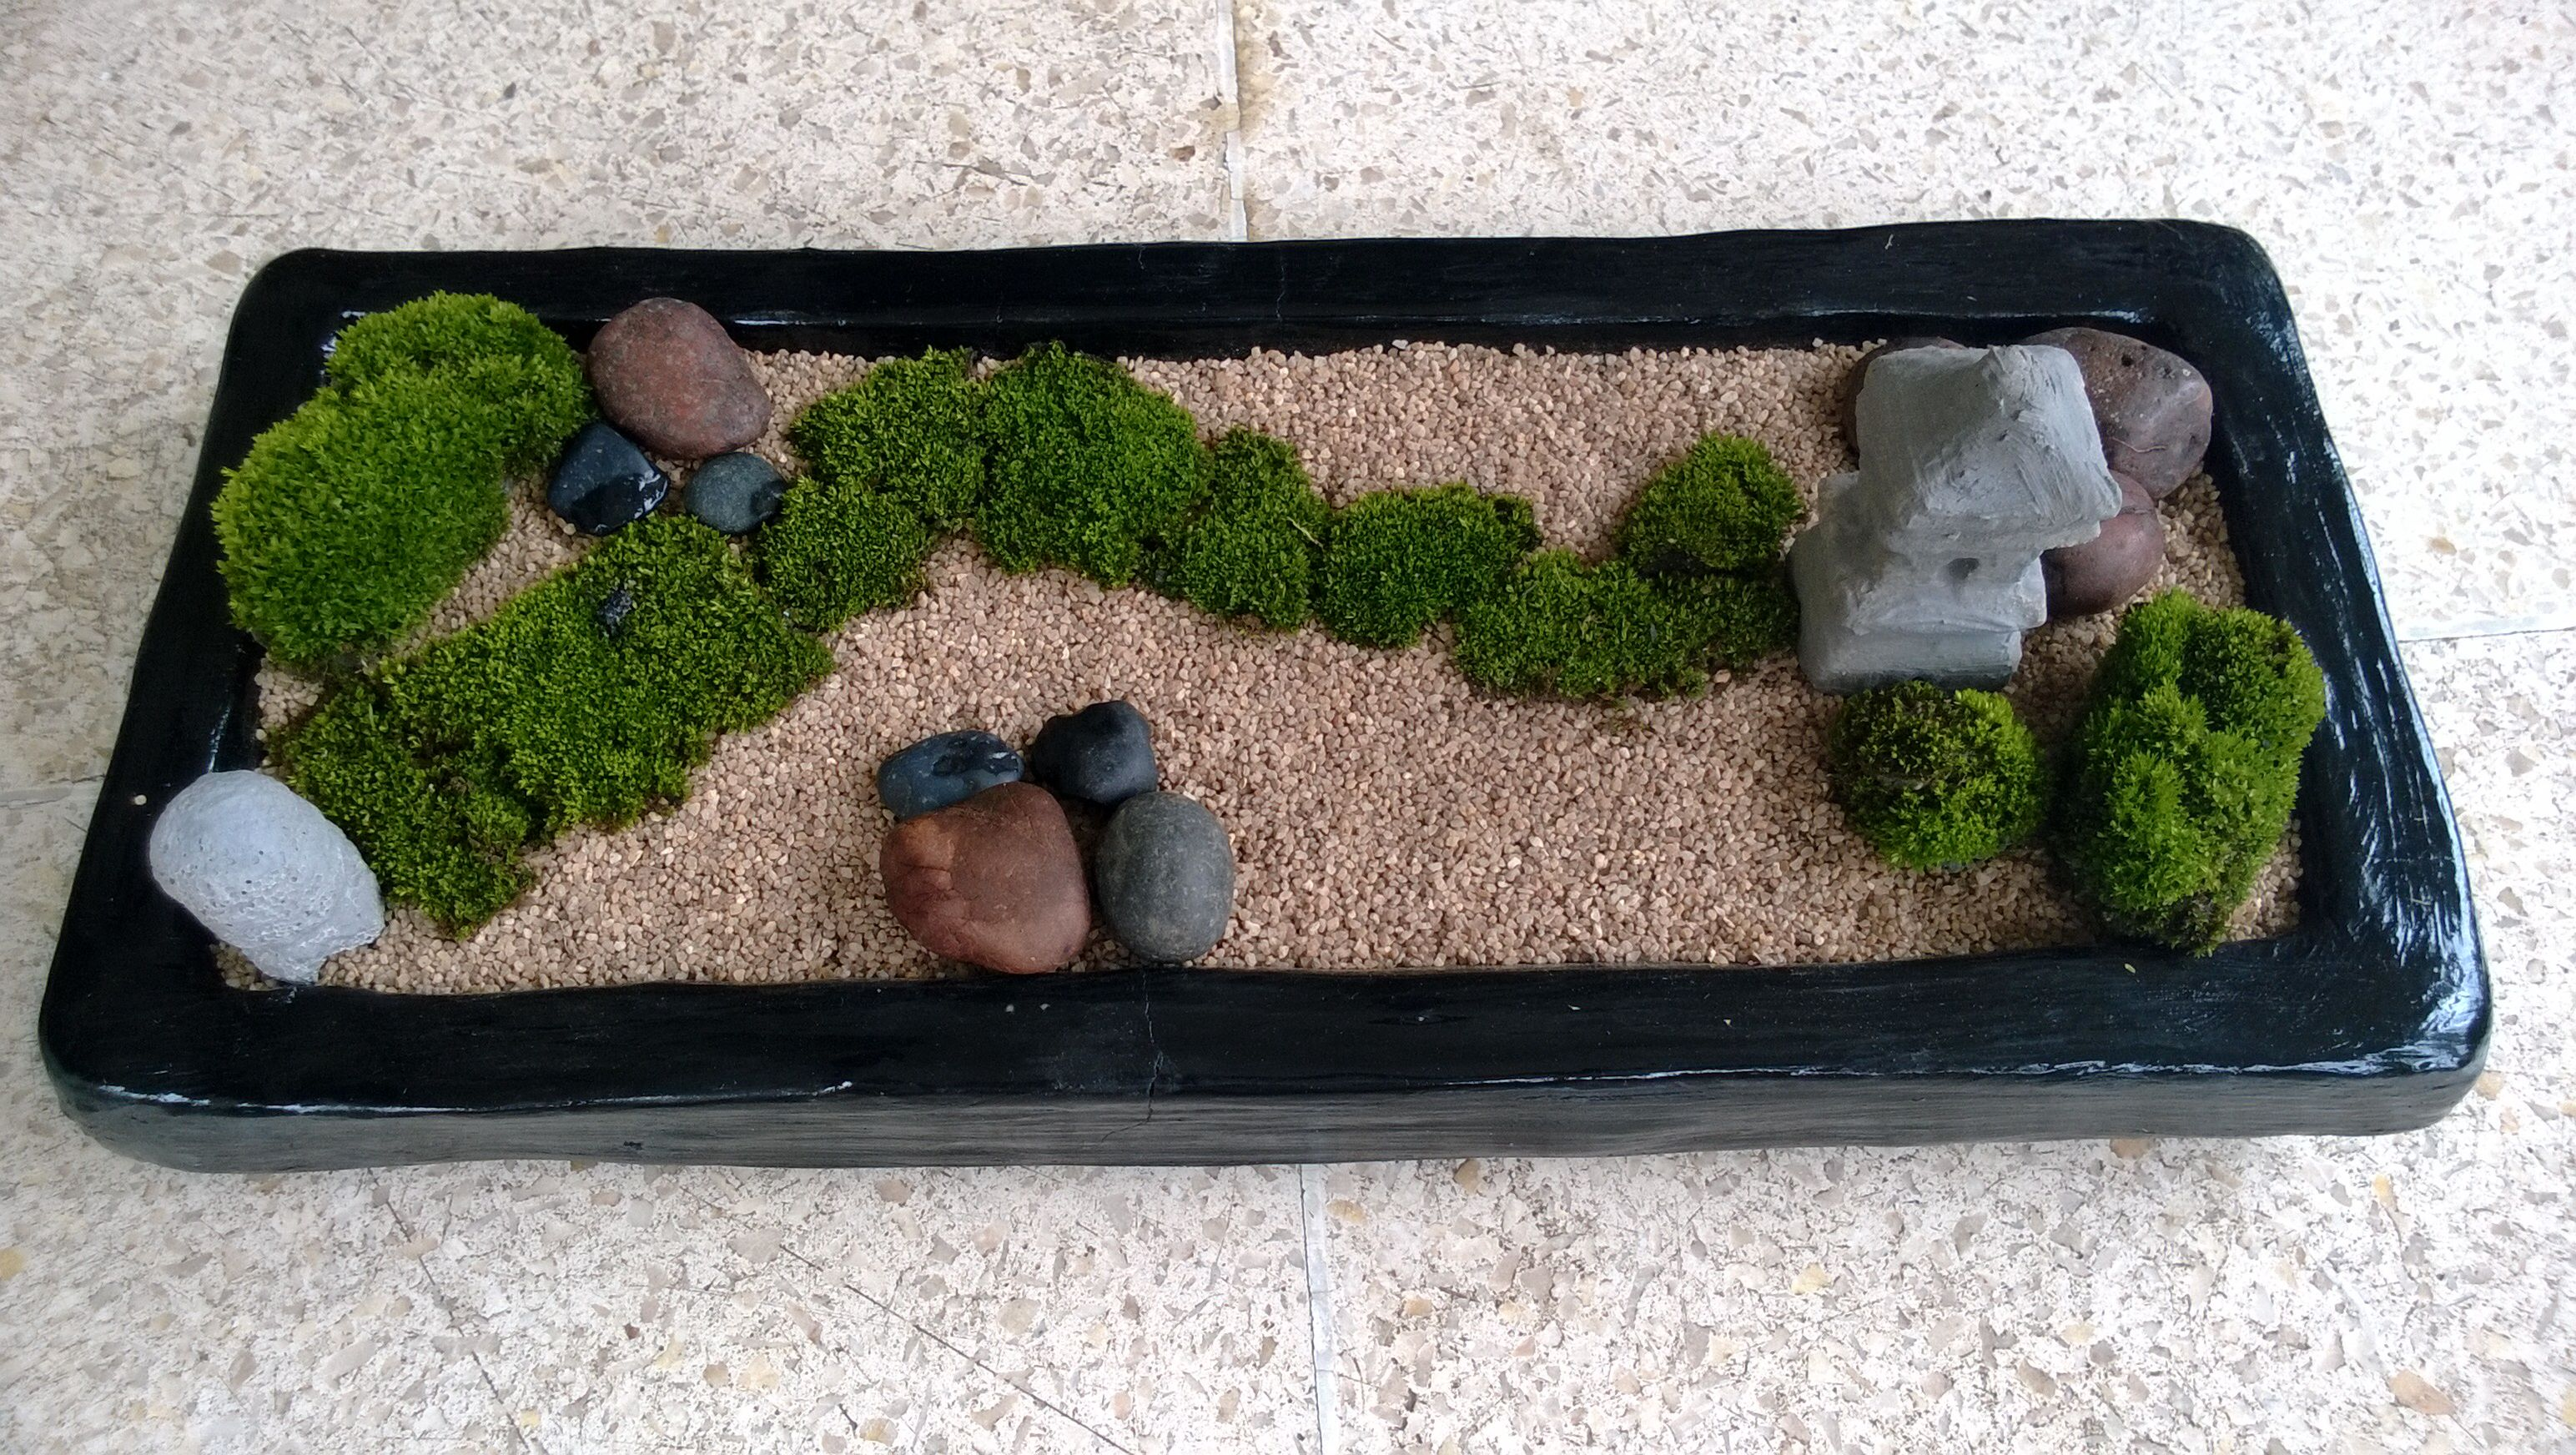 1000 images about zen garden on pinterest zen gardens mini zen garden and kyoto. Black Bedroom Furniture Sets. Home Design Ideas